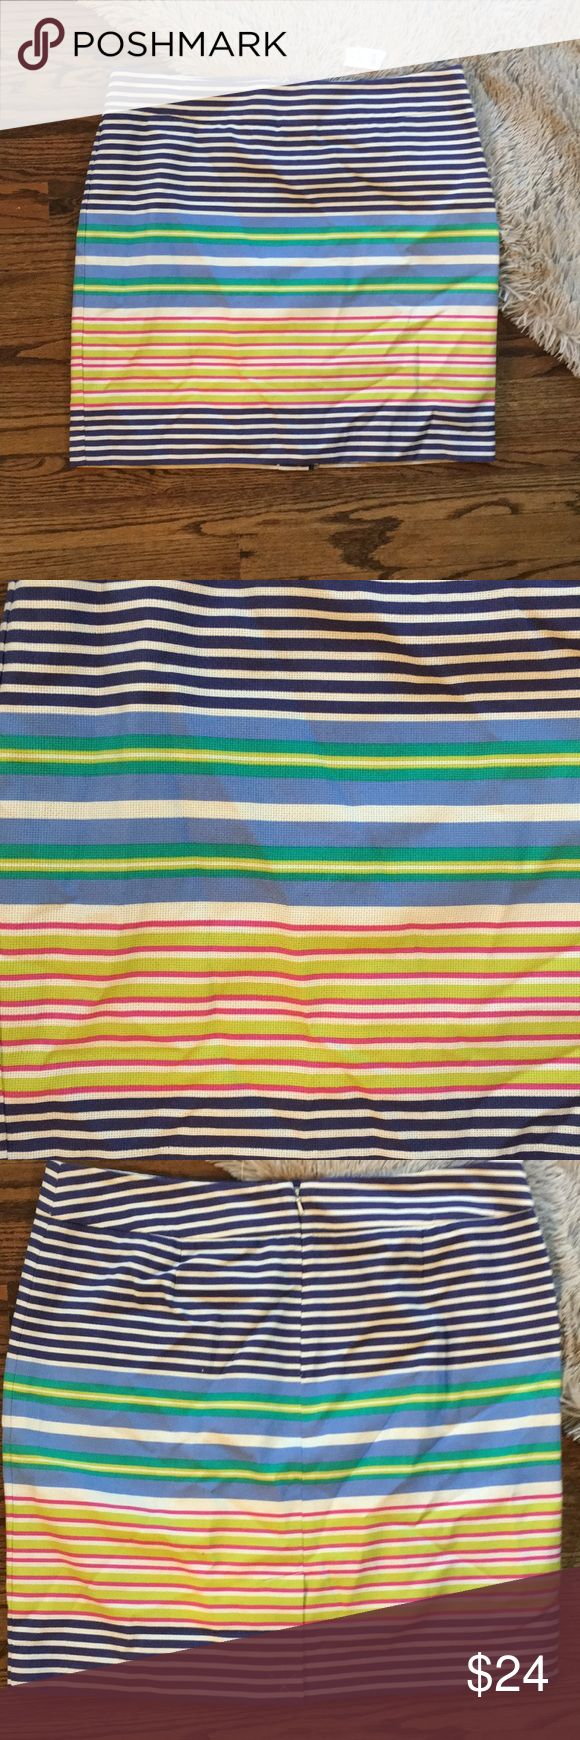 Loft multicolored canvas striped pencil skirt Loft multicolored canvas striped pencil skirt with back middle slit and back zipper. NWT. Size 14. LOFT Skirts